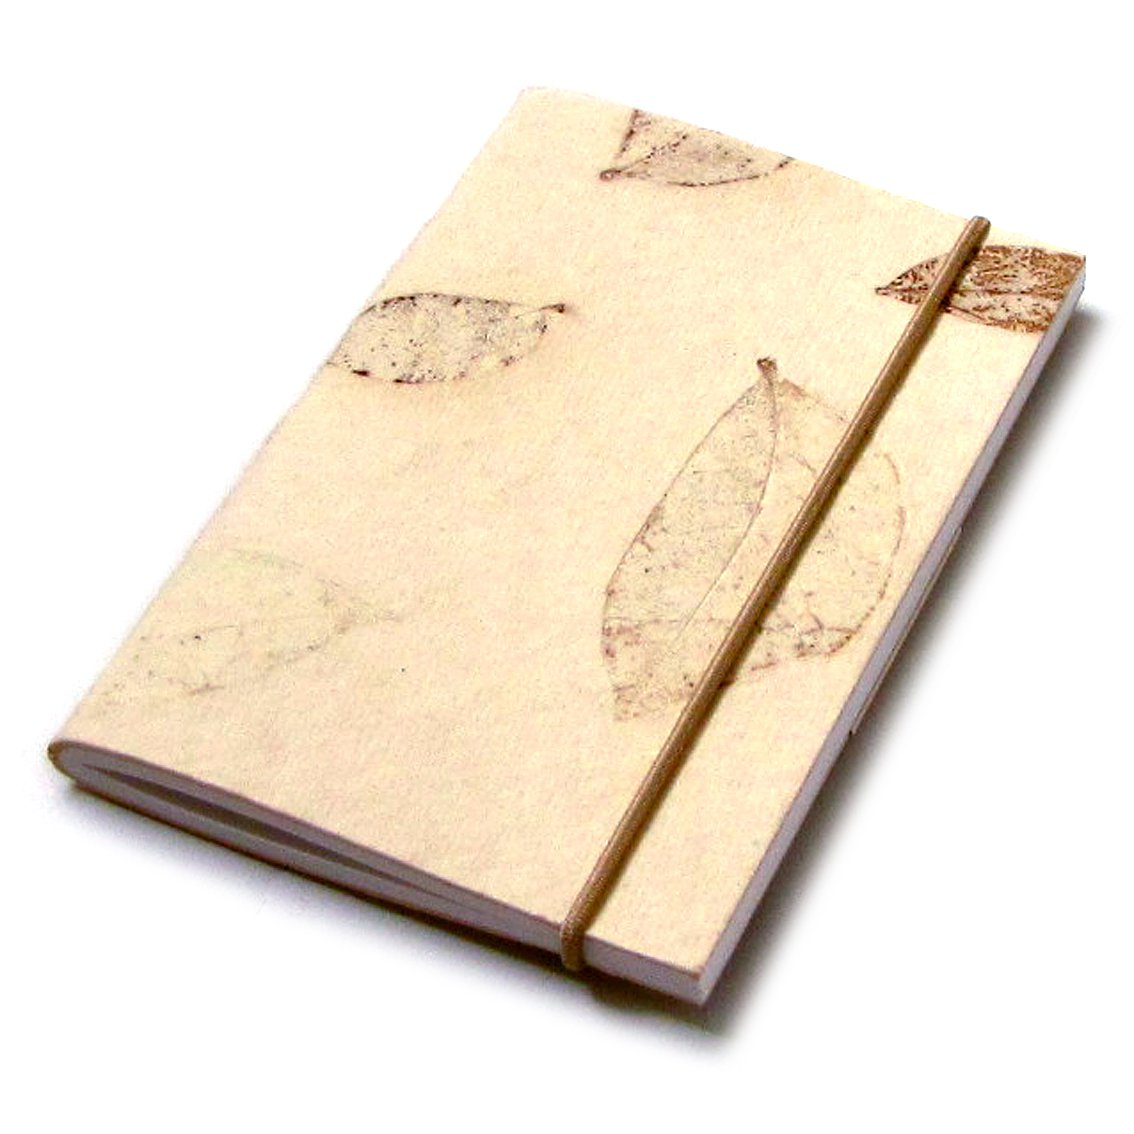 Blank journal handmade notes 3x5 cream small natural leaf recycled paper craft Xmas mom present